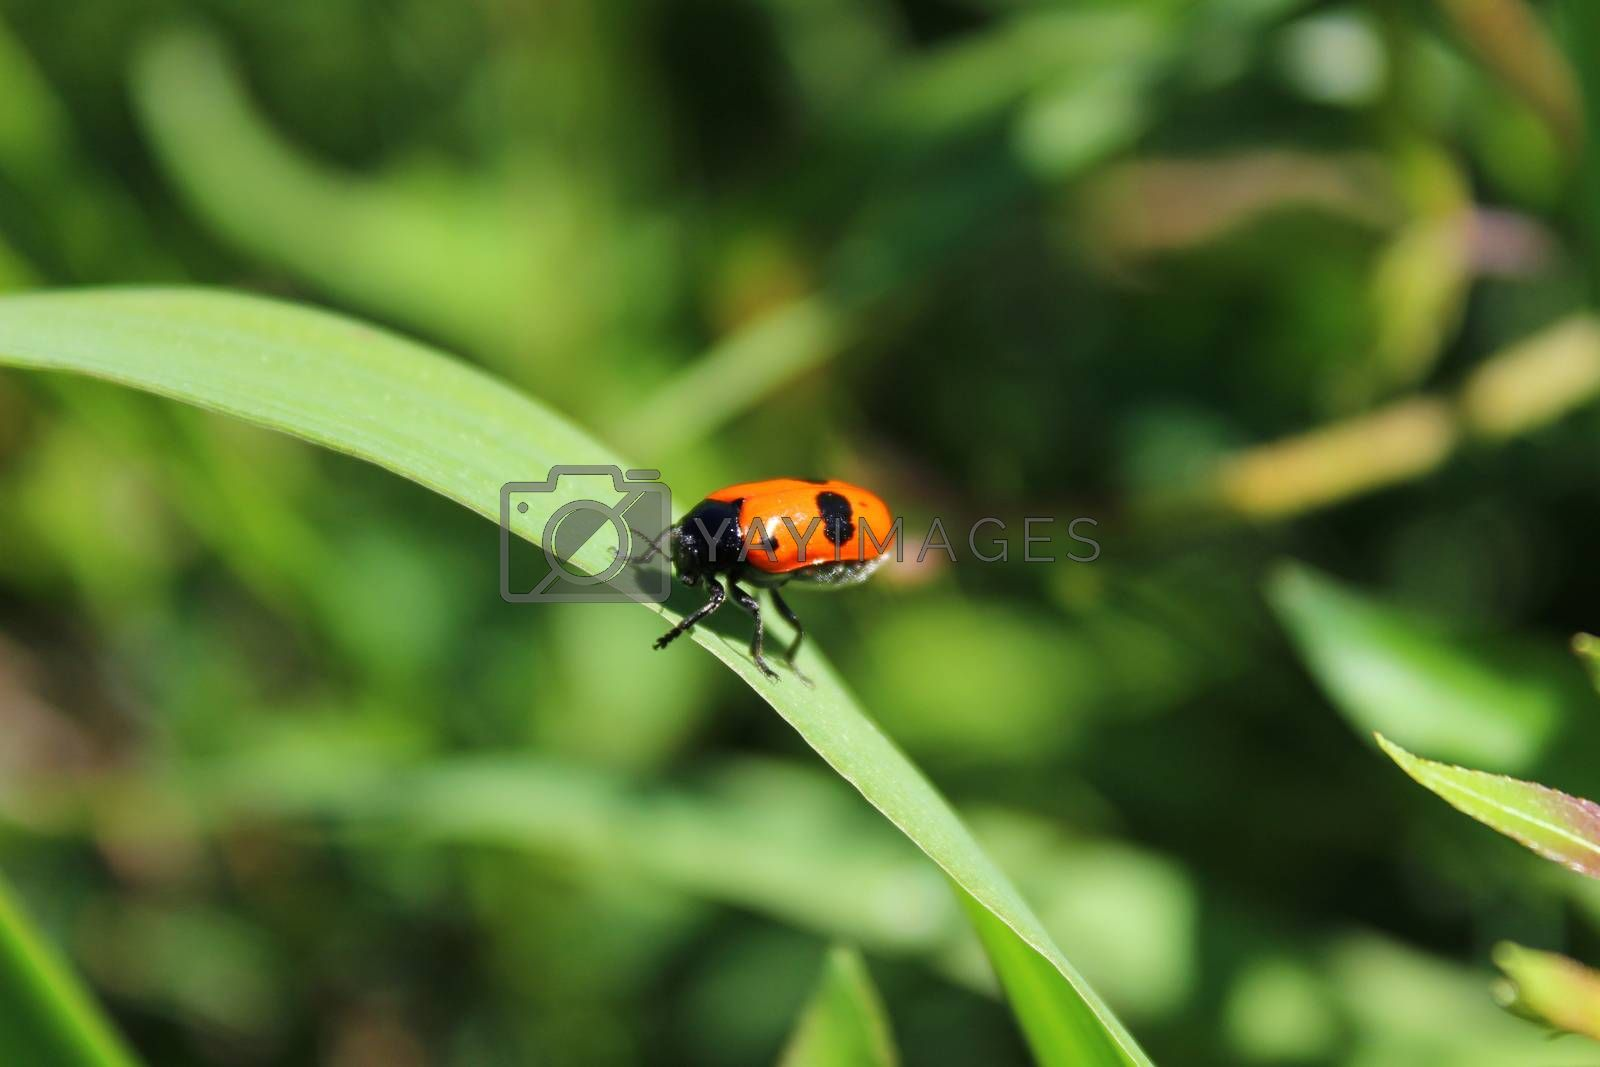 Royalty free image of little beetle in the garden by martina_unbehauen